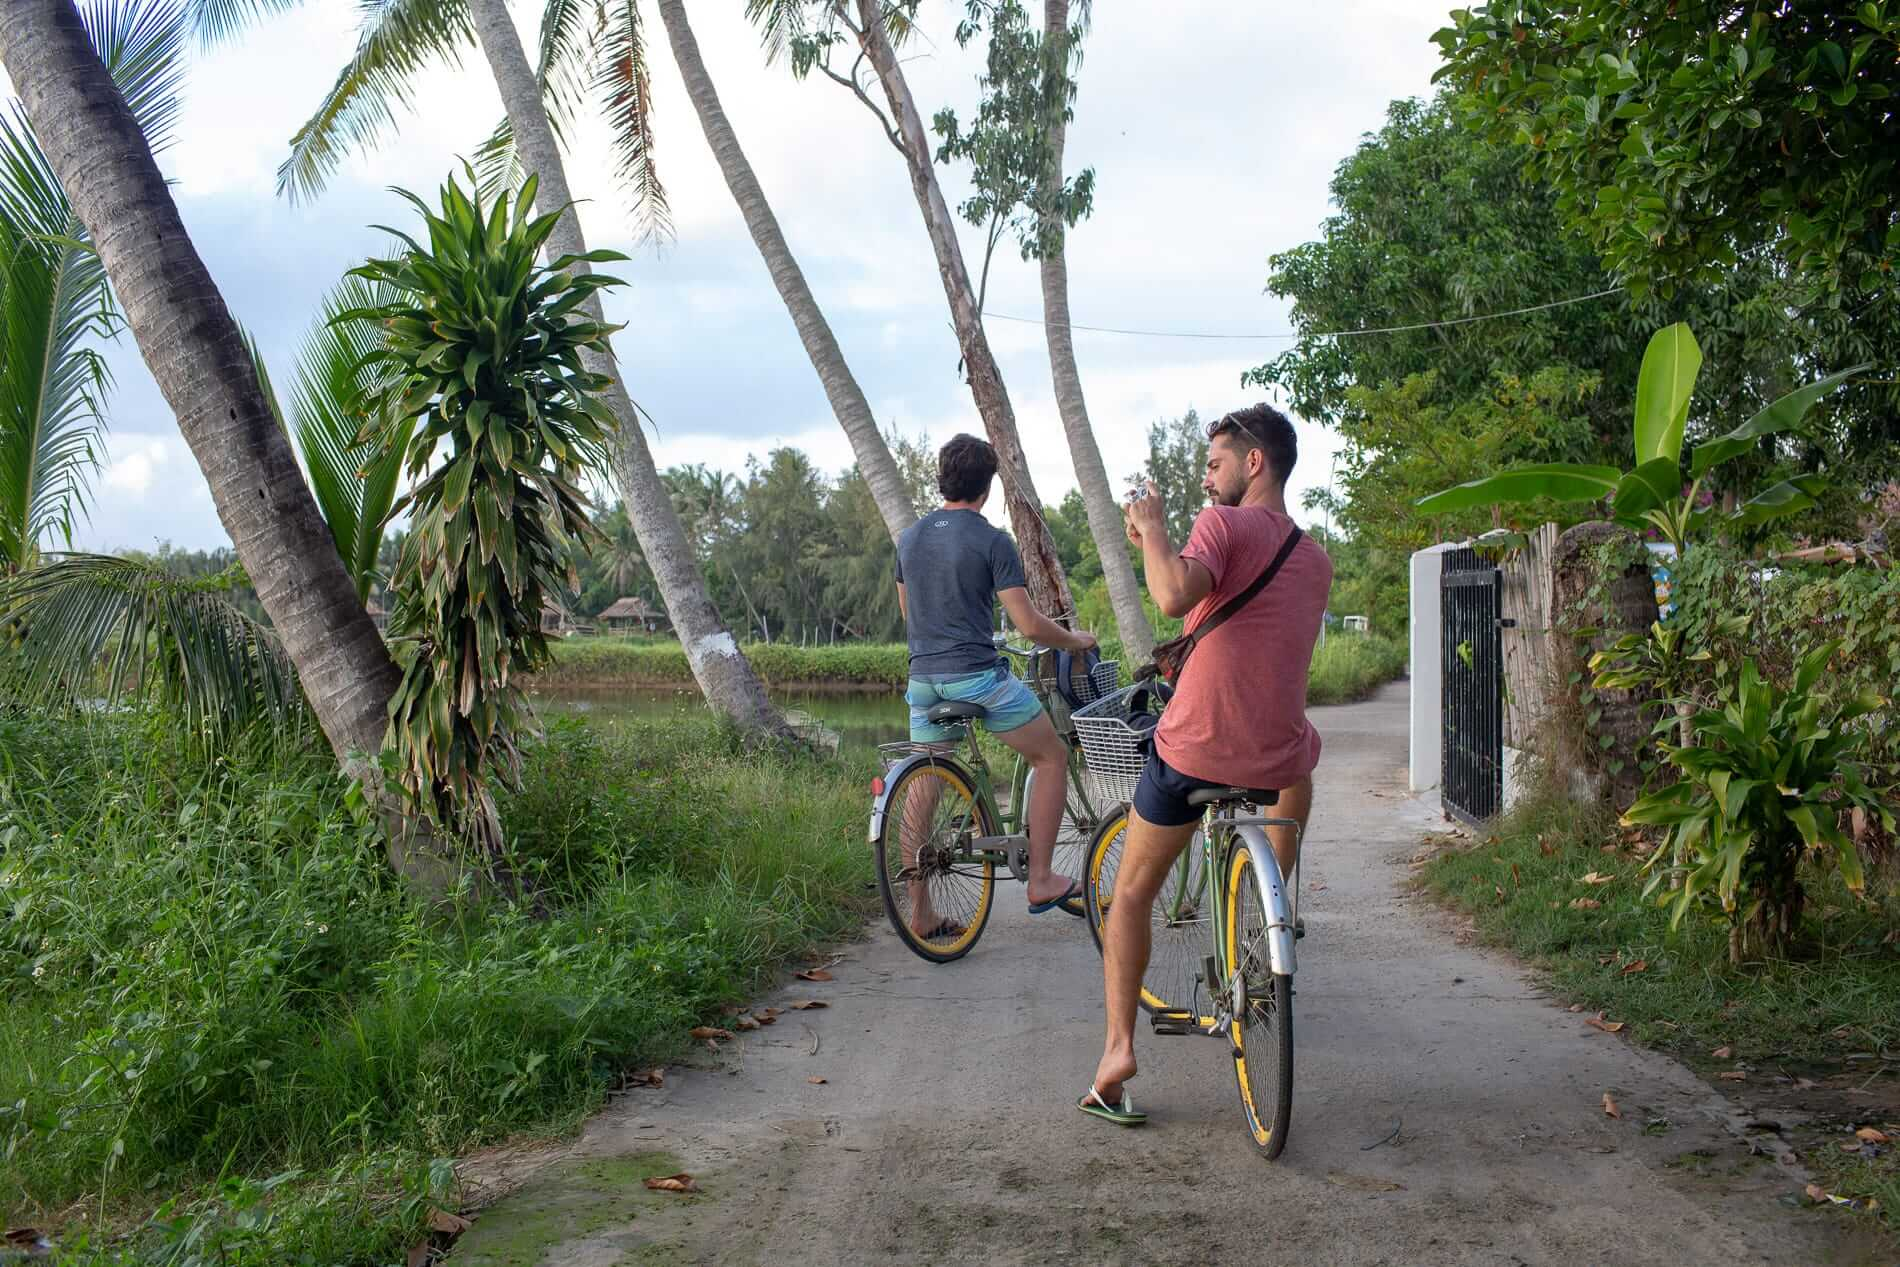 clyclist in Hoi An during the best time to visit Hoi An